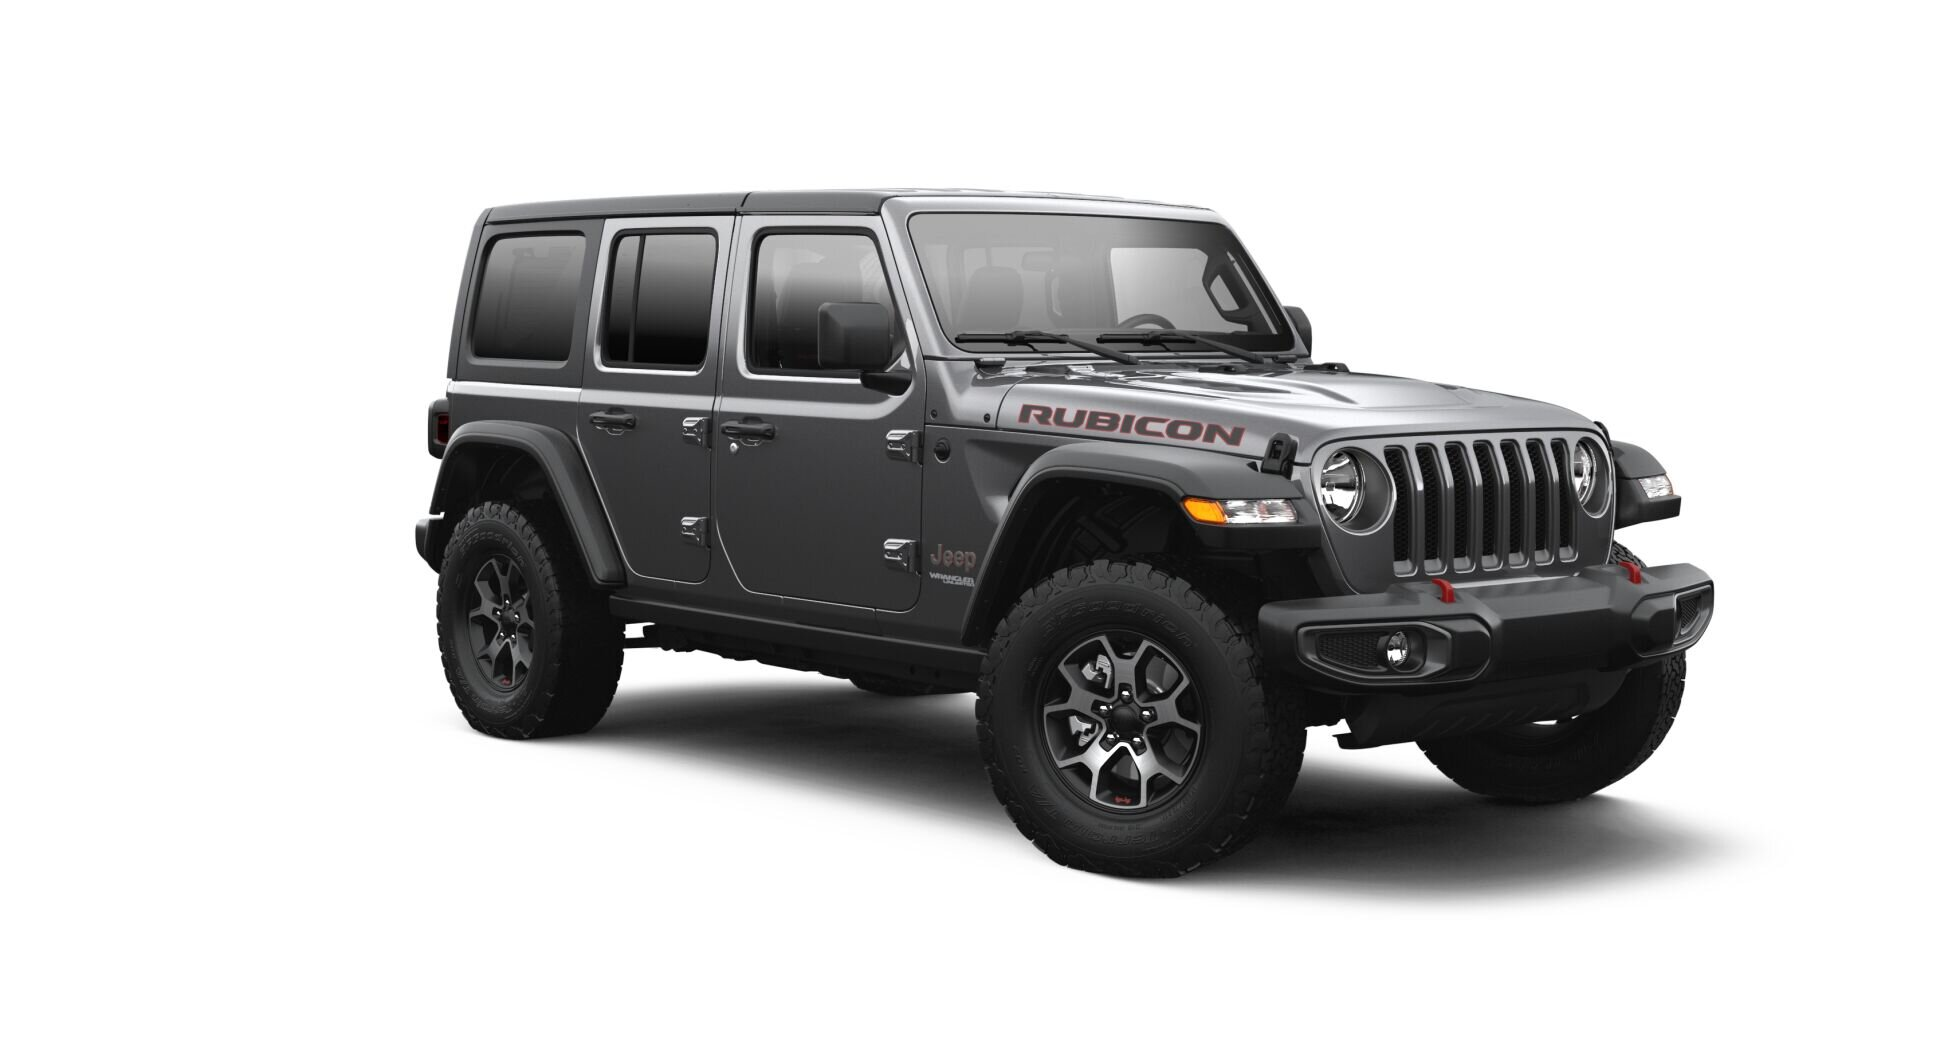 2021 Jeep Wrangler Rubicon Front View - Image Courtesy of Jeep Chrysler